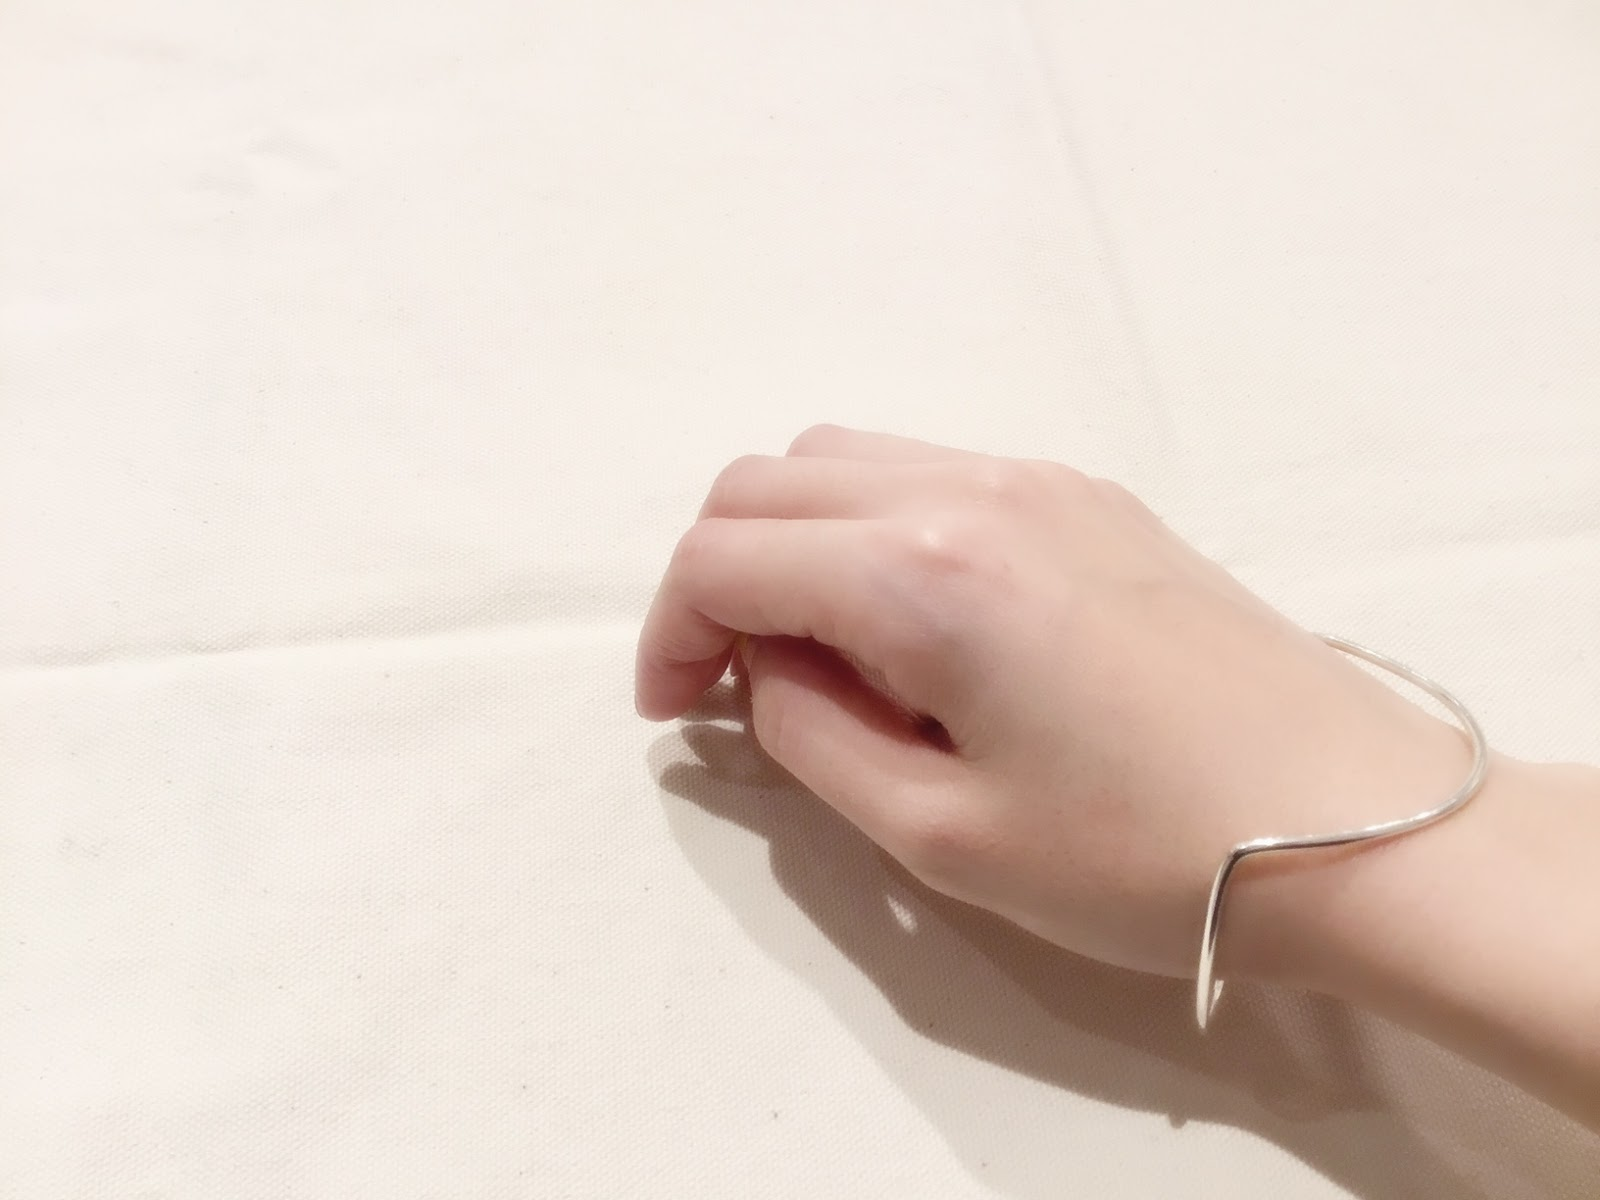 ANOTHER FEATHER【アナザーフェザー】ARC BANGLE&ARC RING◆eighty88eight 綾川